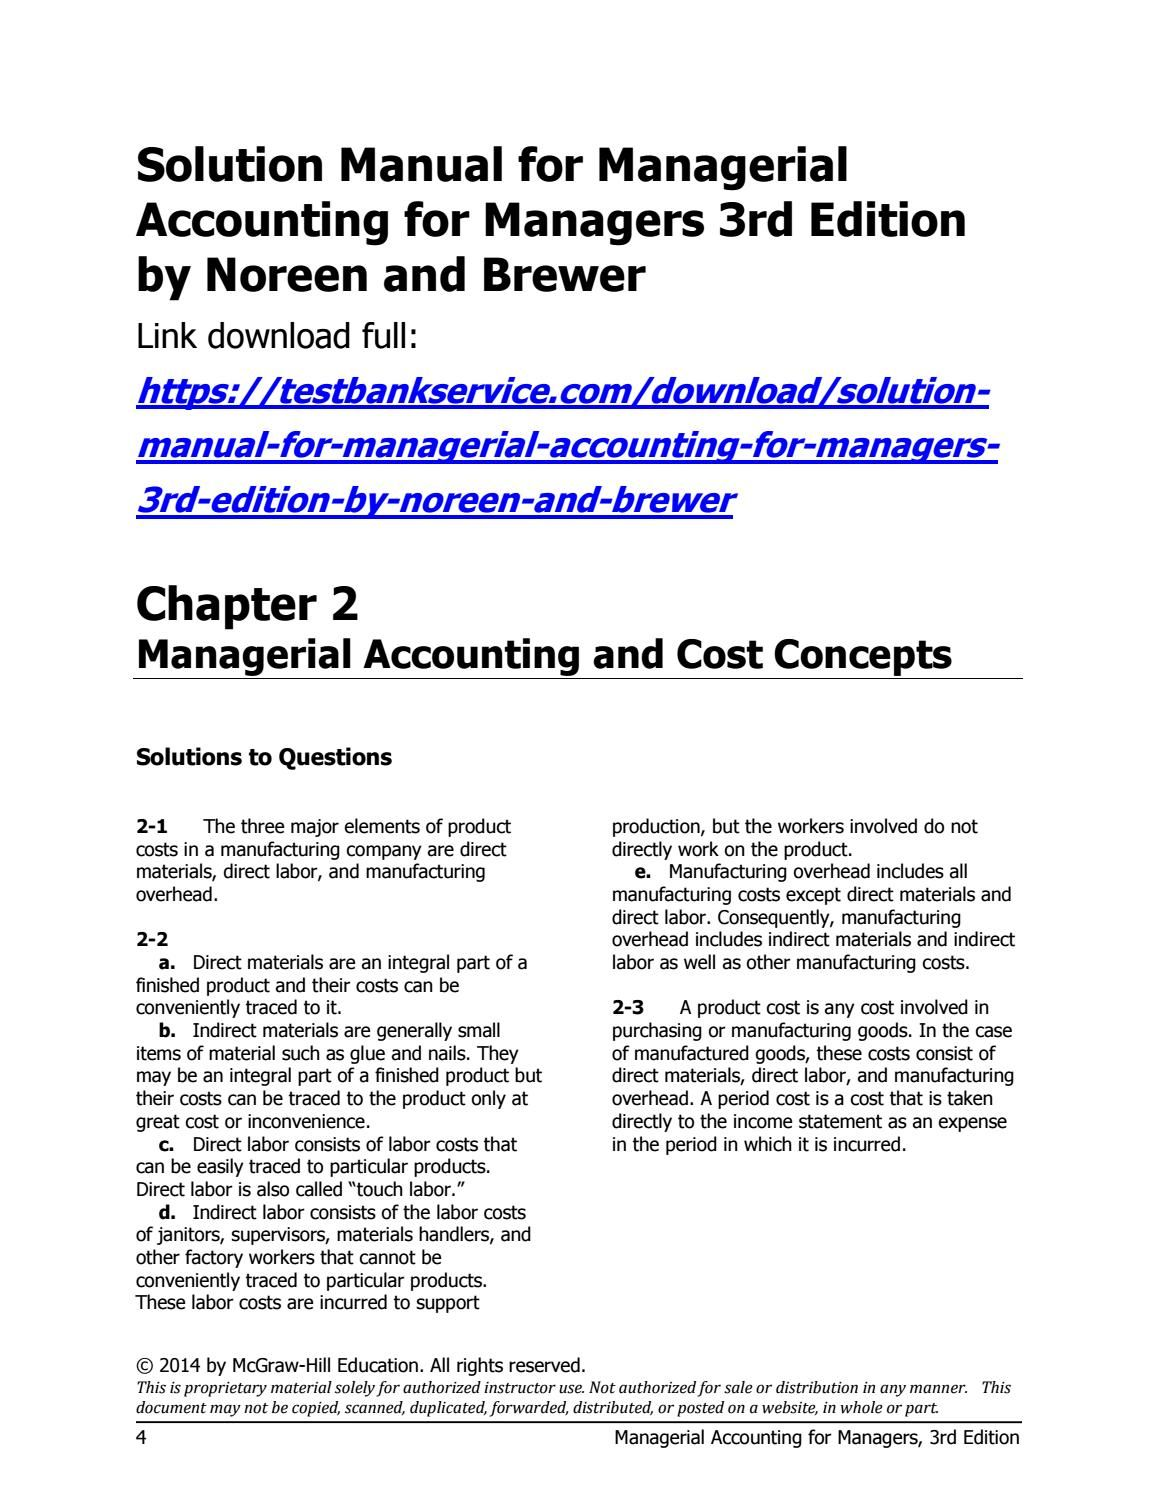 Solution Manual for Managerial Accounting for Managers 3rd